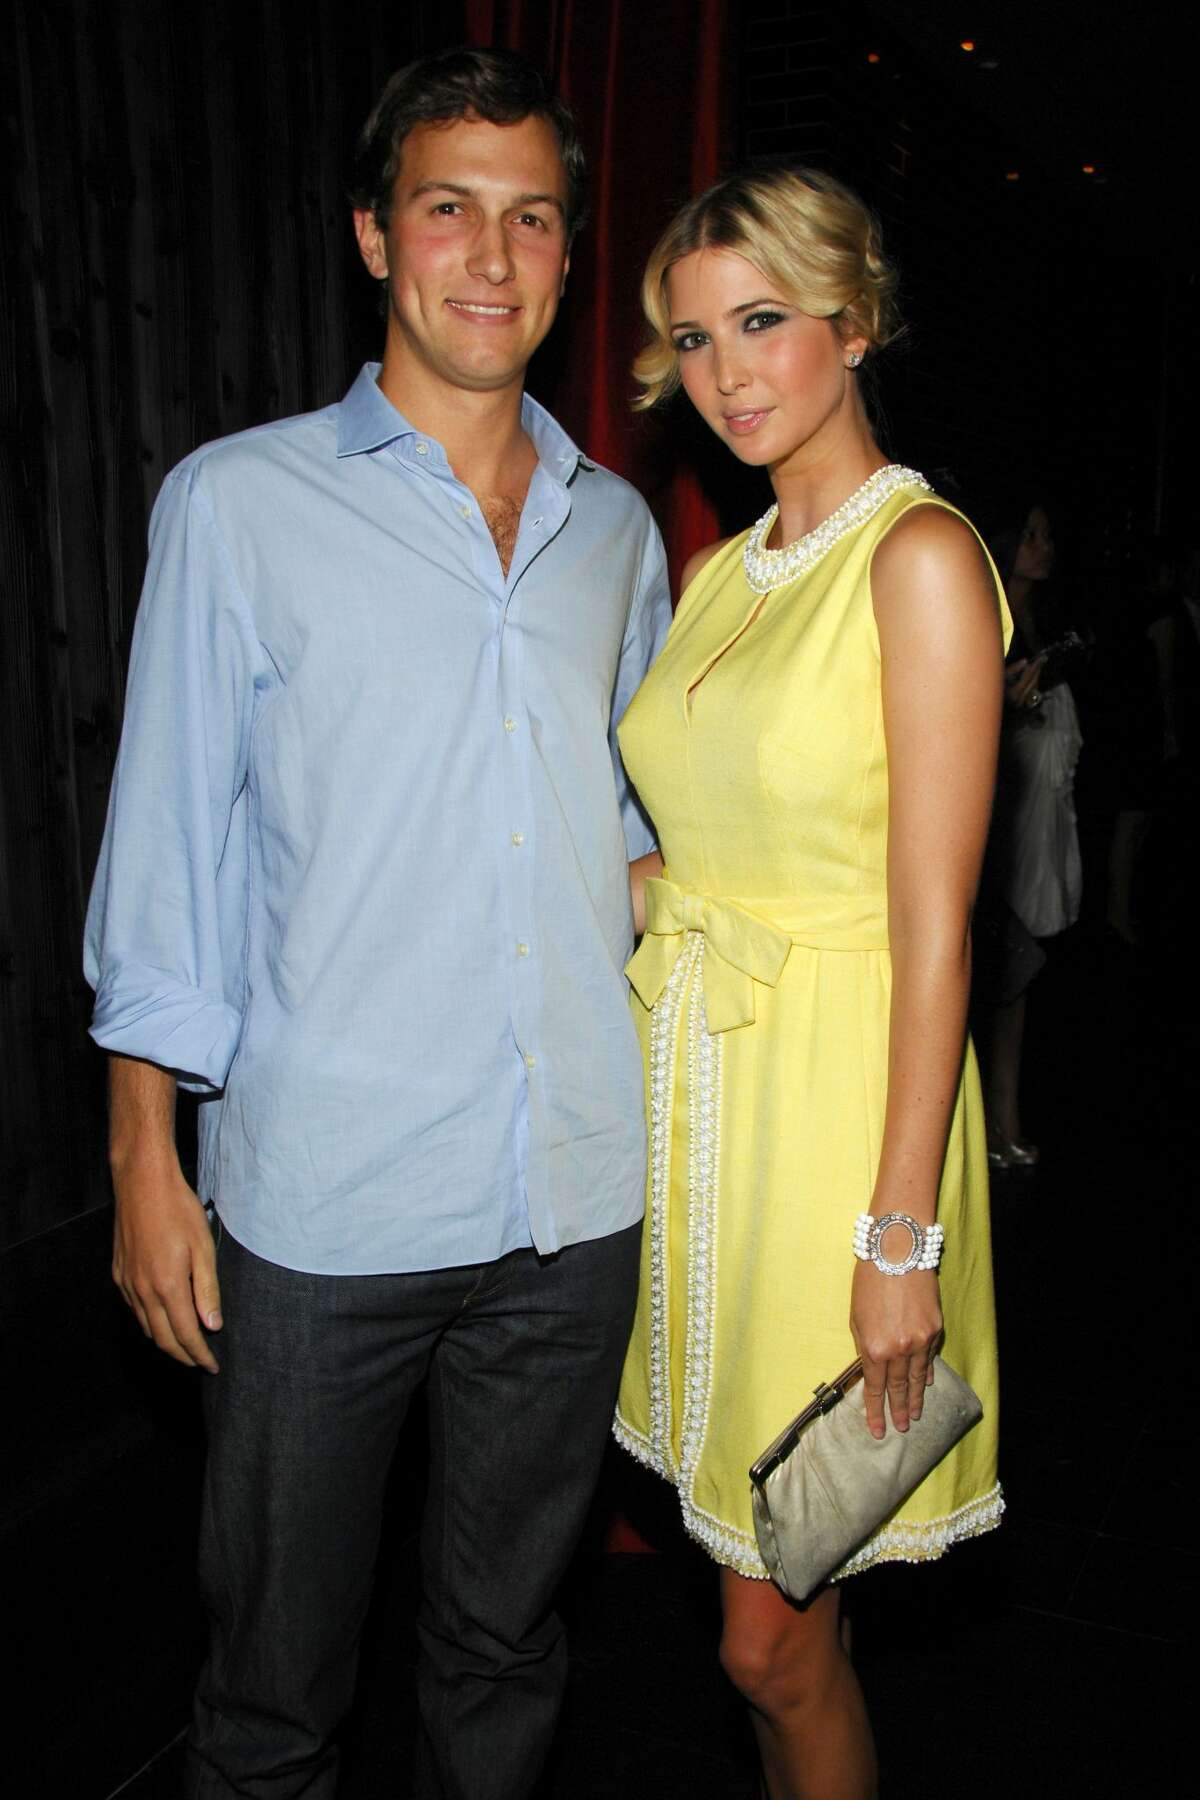 What you need to know about Ivanka Trump and Jared Kushner's relationship 1) They met because of a networking opportunity:A mutual friend of the couple thought it would be a good idea for the two to know each other professionally. They fell for each other and now call it the